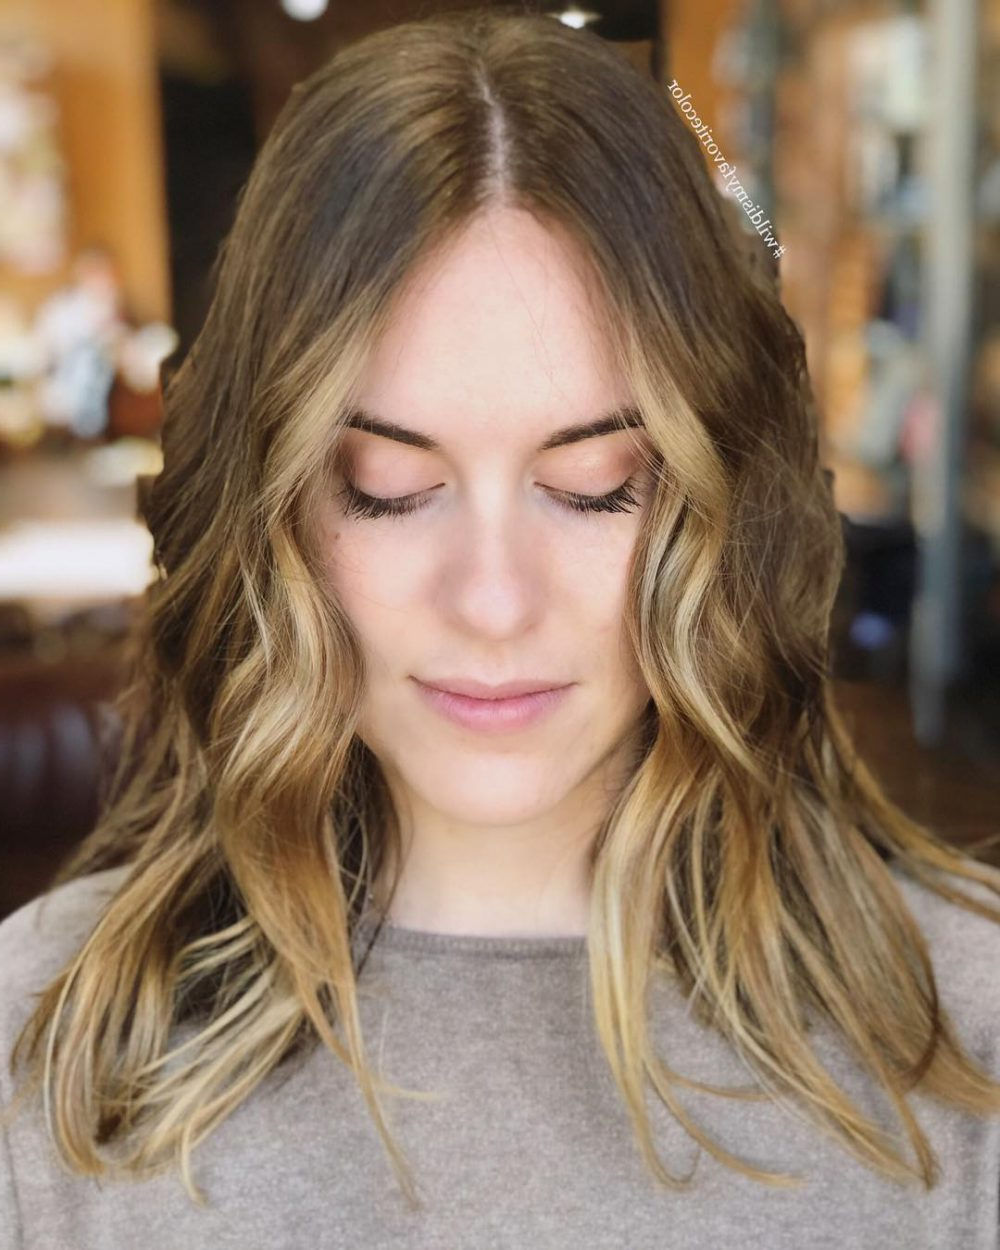 17 Flattering Medium Hairstyles For Round Faces In 2019 Pertaining To Favorite Medium Haircuts For Circle Faces (Gallery 19 of 20)